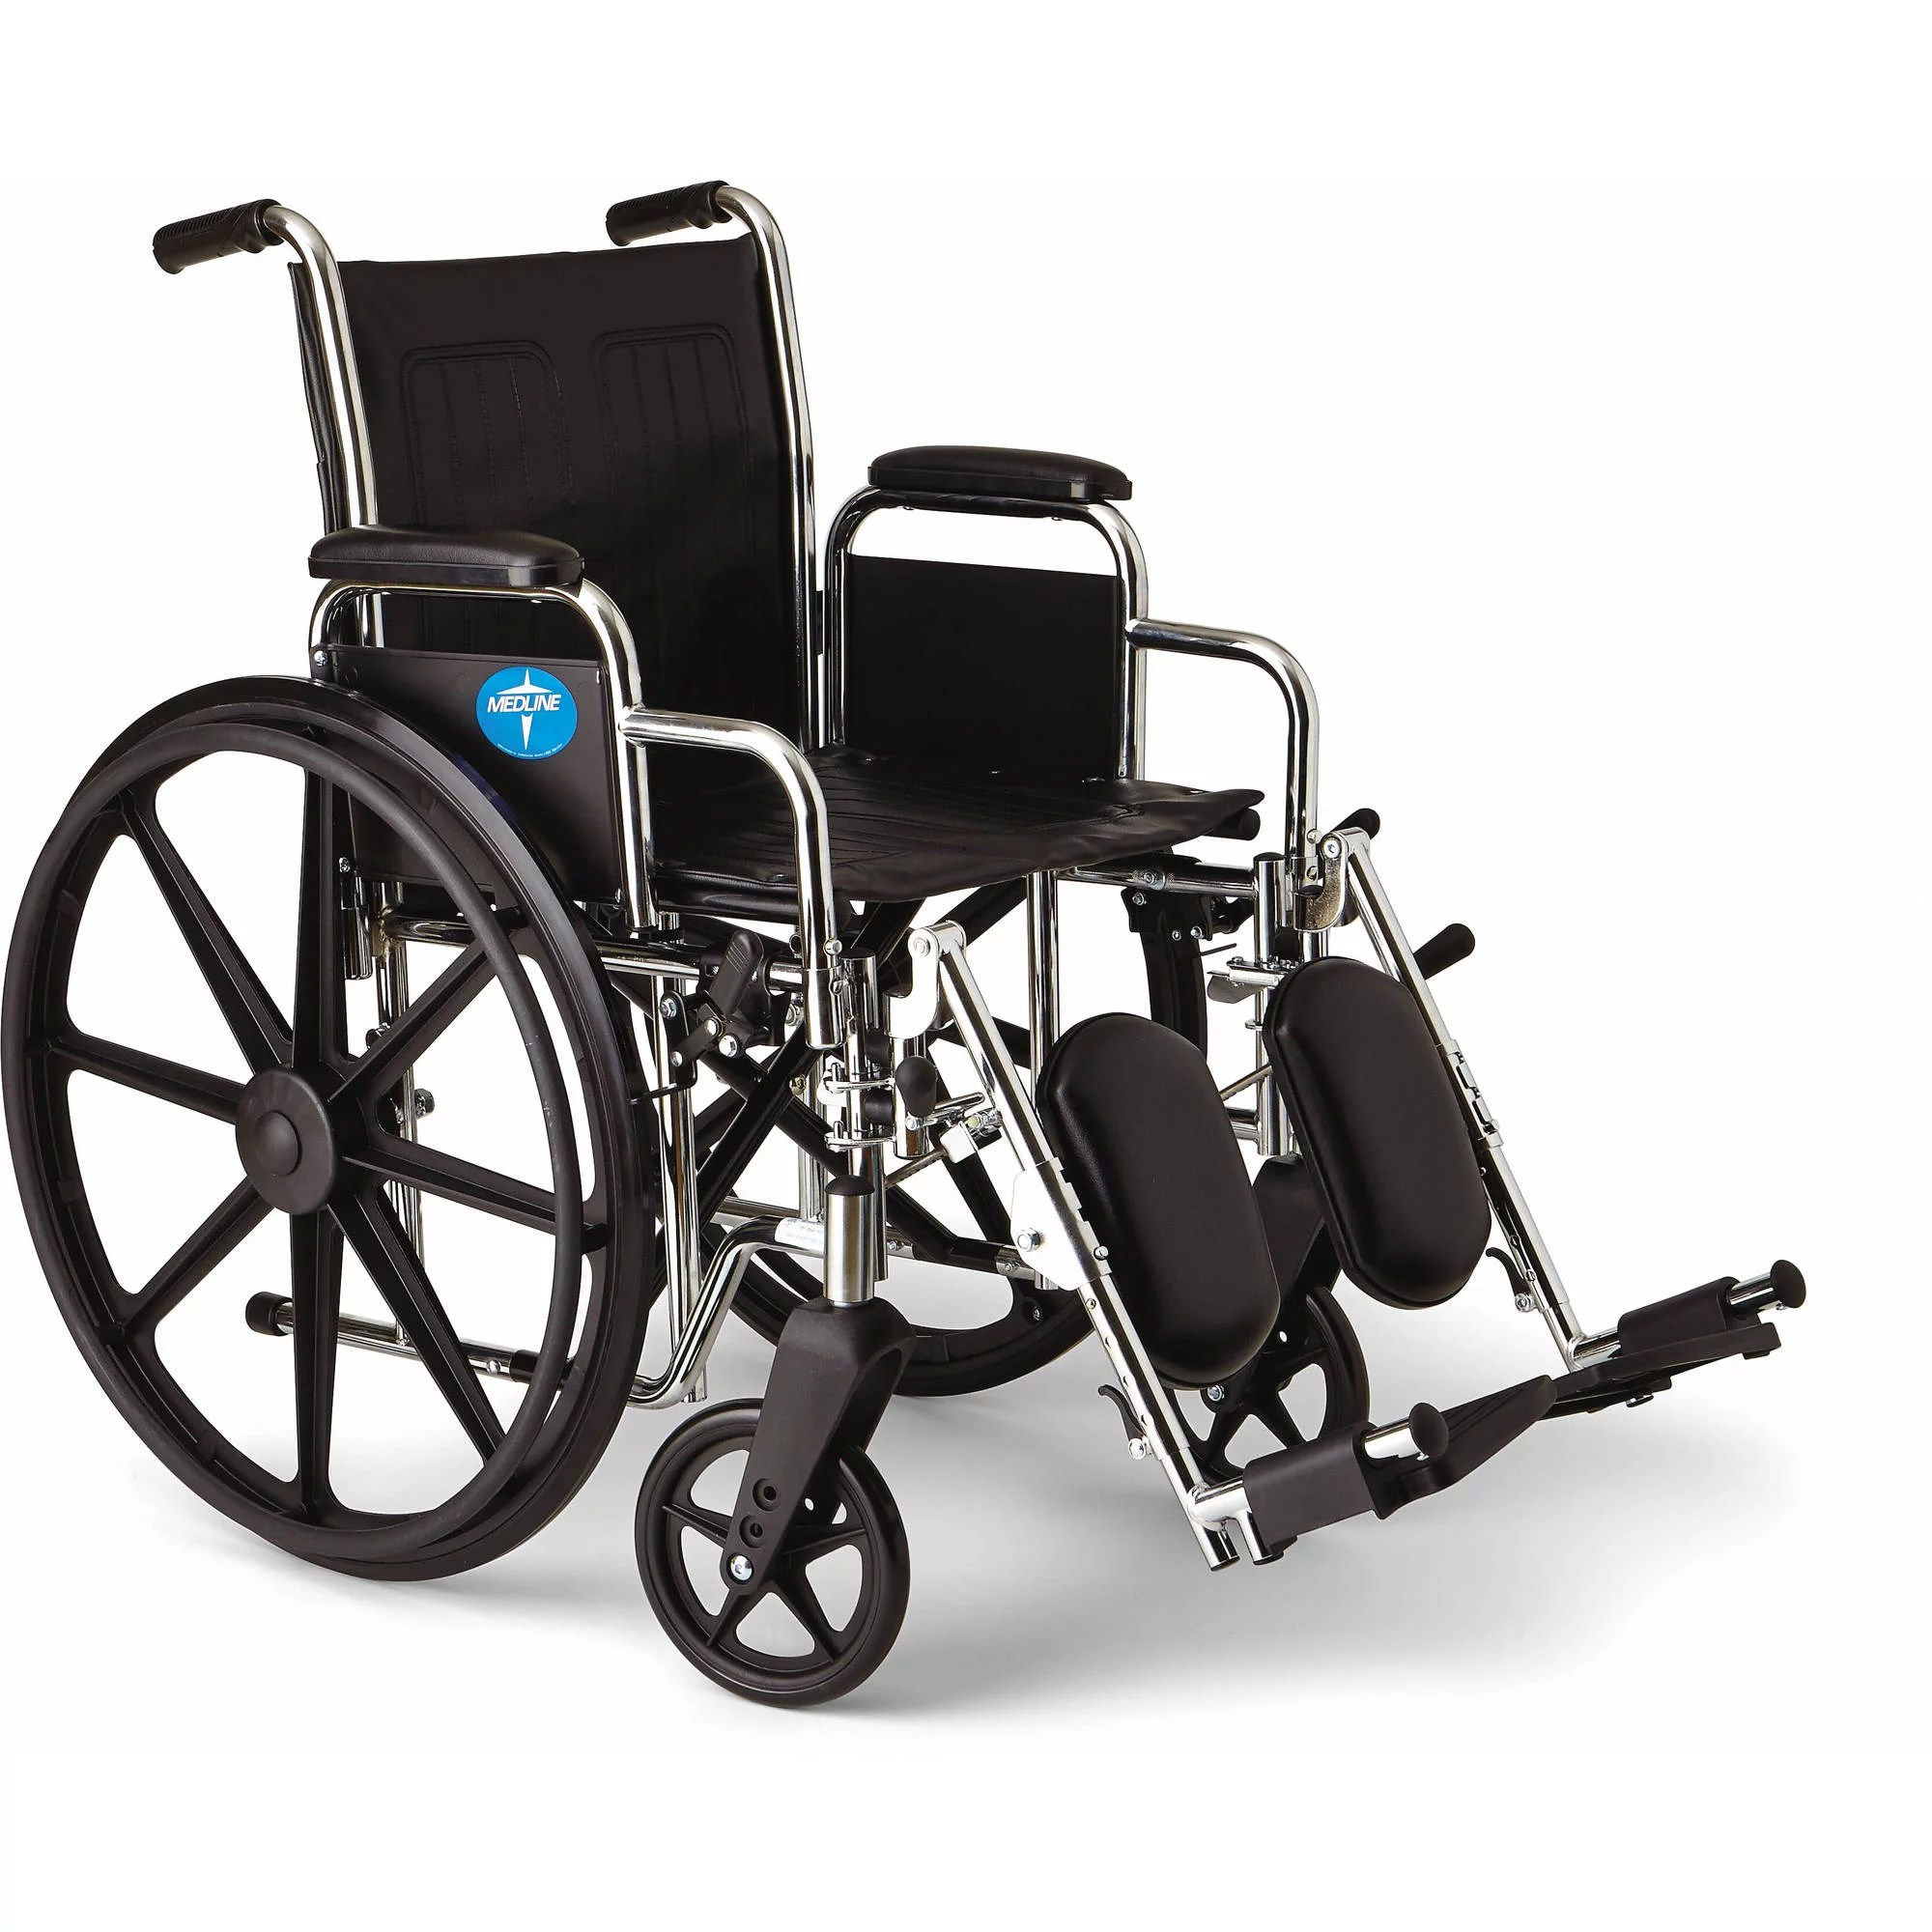 Fauteuil Roulant Manuel Weely Nov Medline Excel 2000 Deluxe Wheelchair